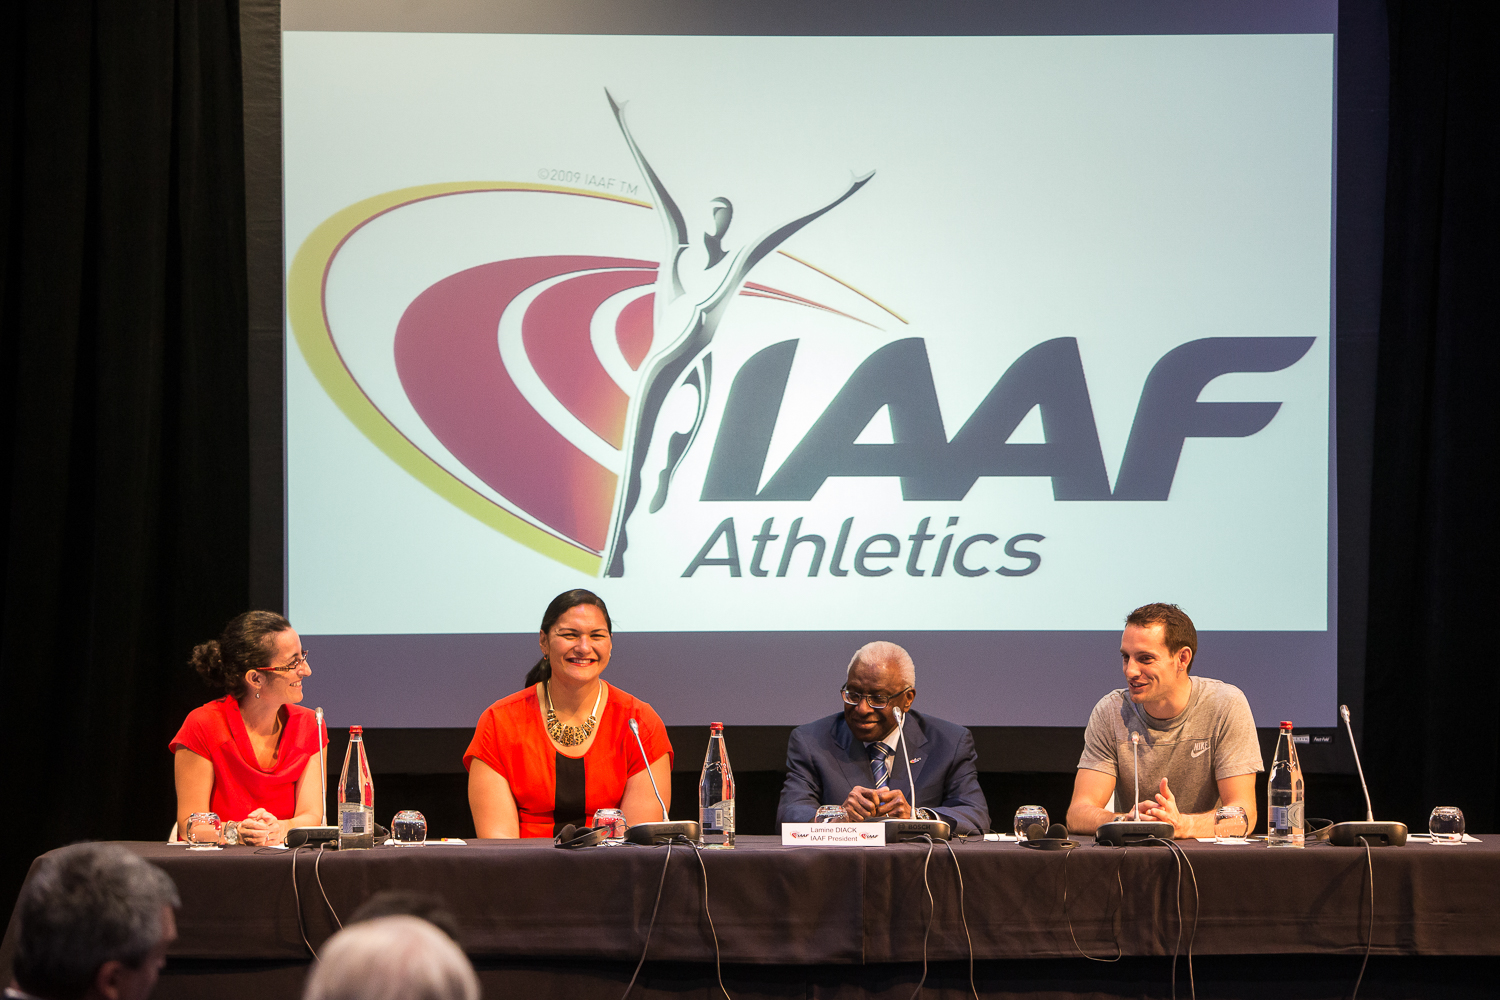 Announcing the IAAF athlete of the year awards, left to right: IAAF press deputy Laura Arcoleo, New Zealand shot-putter Valerie Adams, IAAF president Lamine Diack, French pole-vaulter Renaud Lavillenie // photo courtesy IAAF